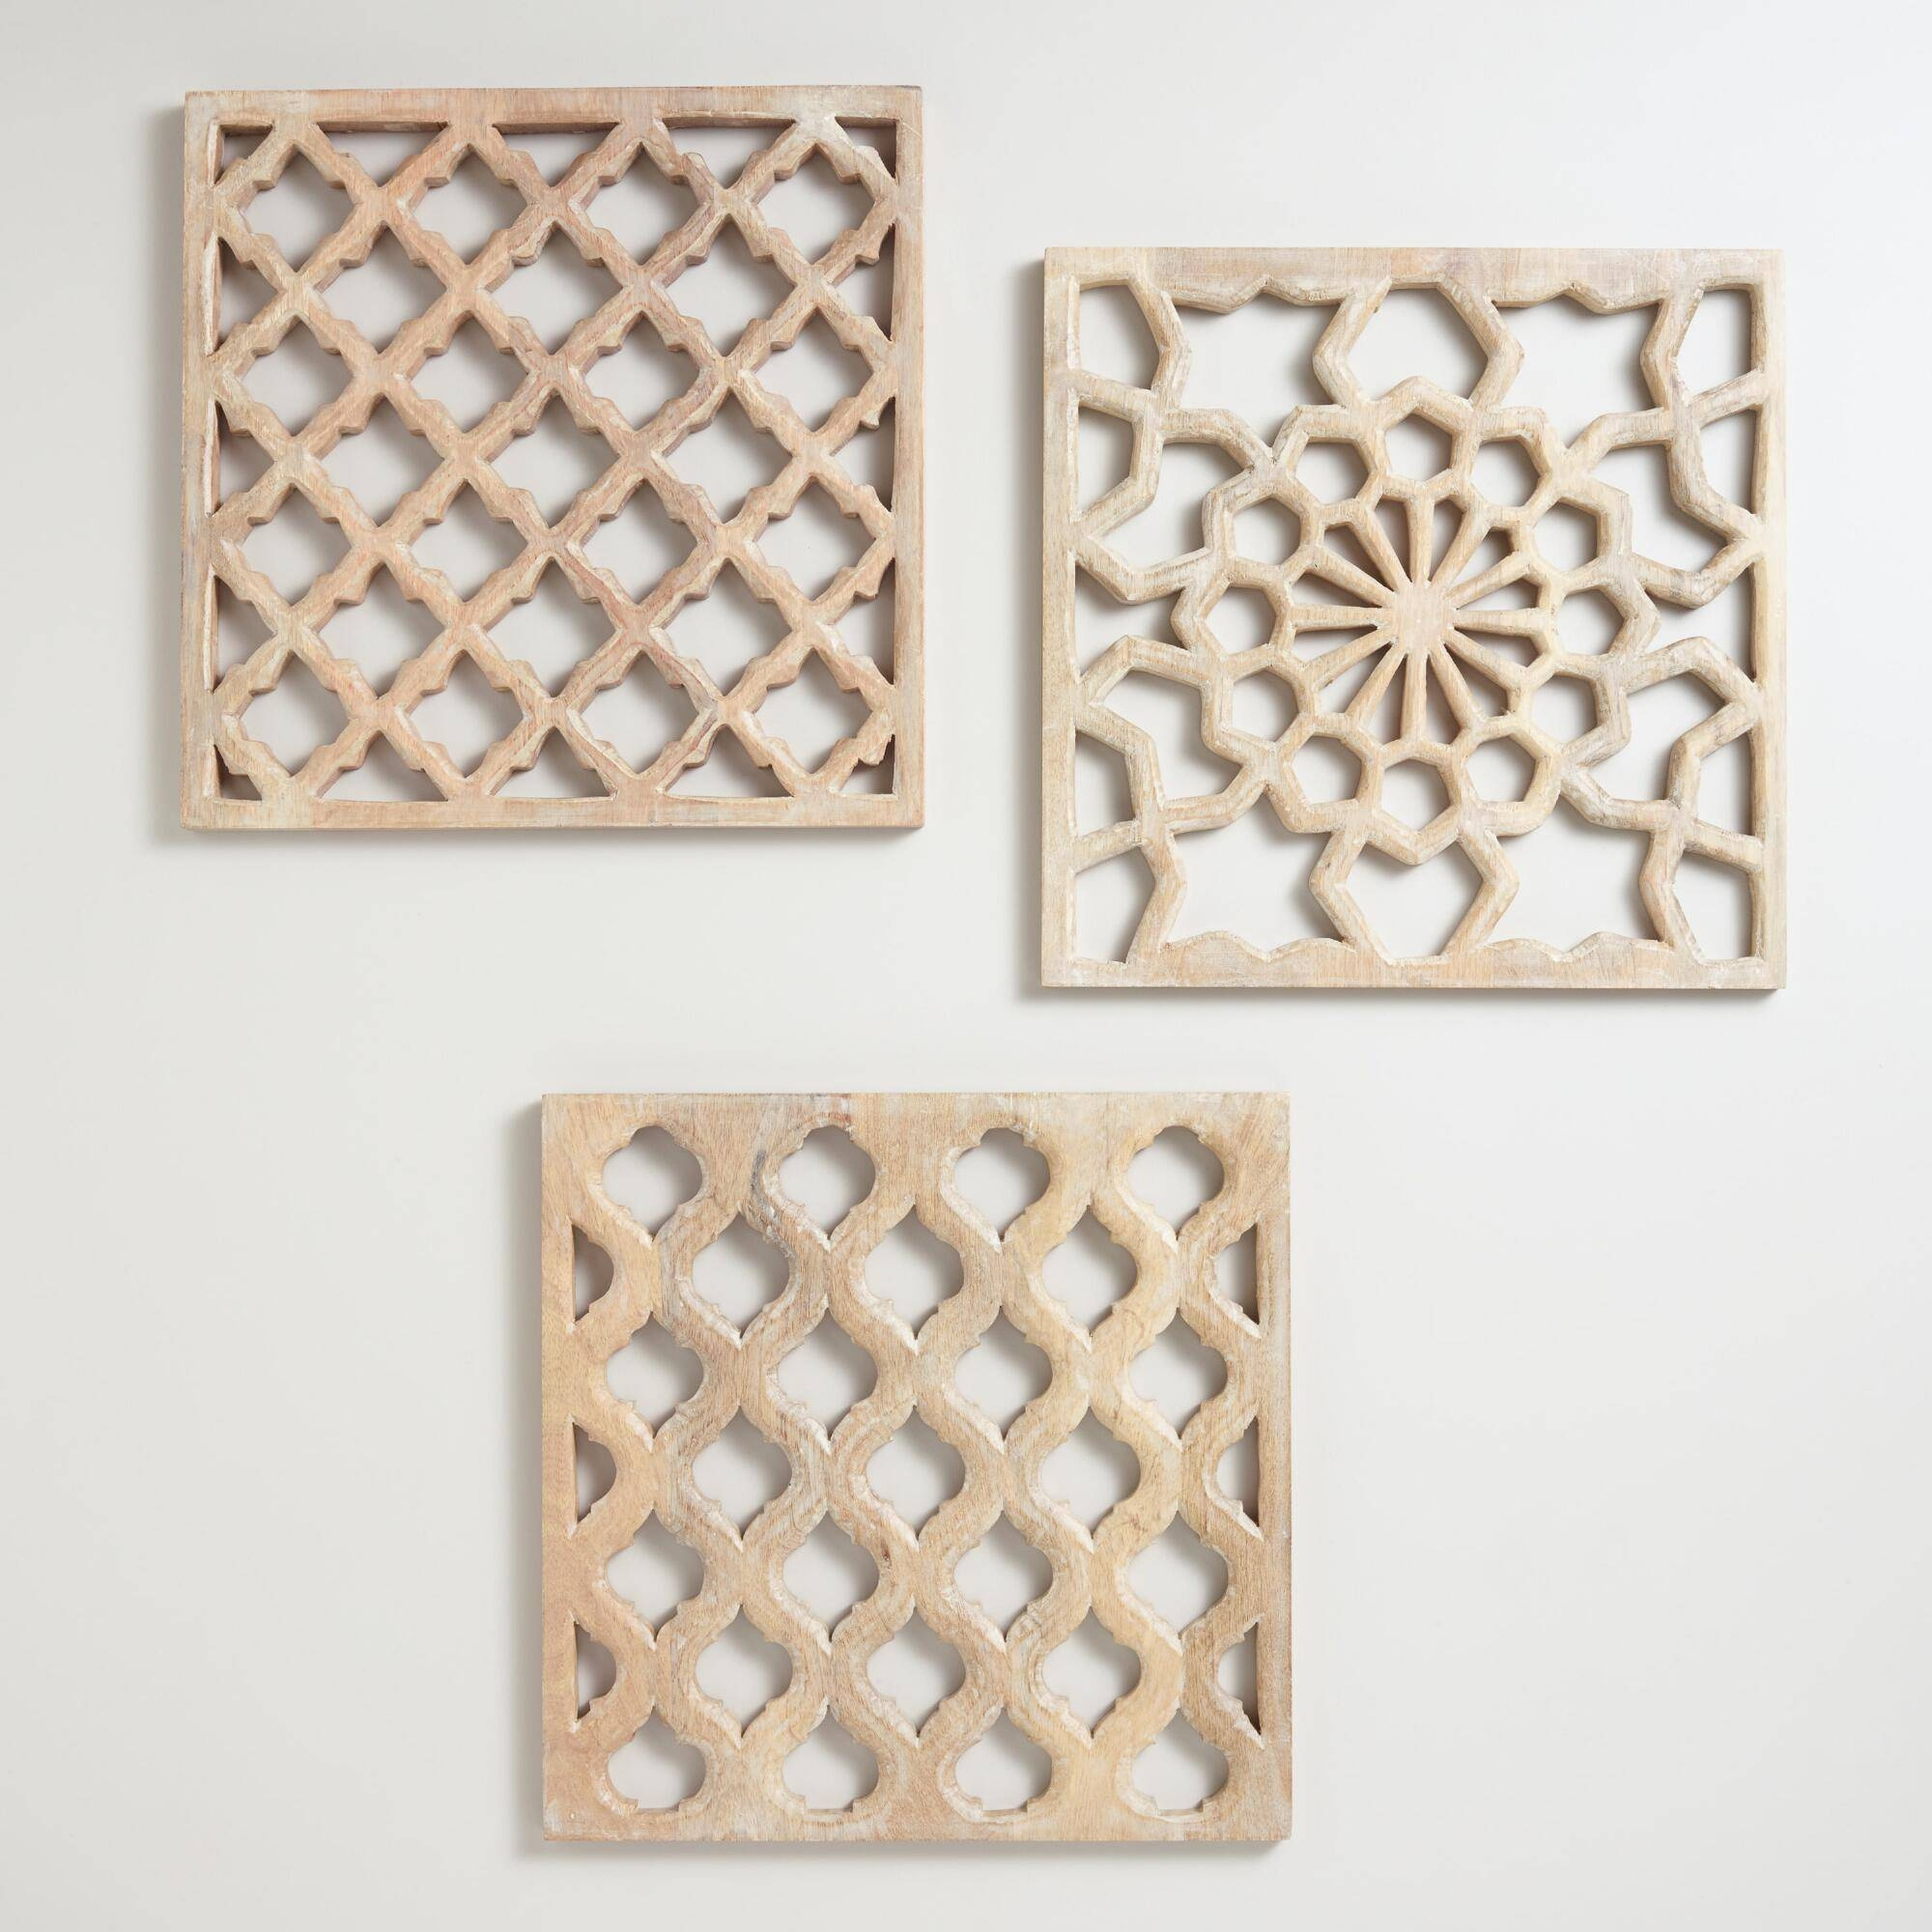 Carved Wooden Wall Panels – Wooden Wall Panels: Way To Enhance The With Regard To Newest Wood Carved Wall Art Panels (View 7 of 25)